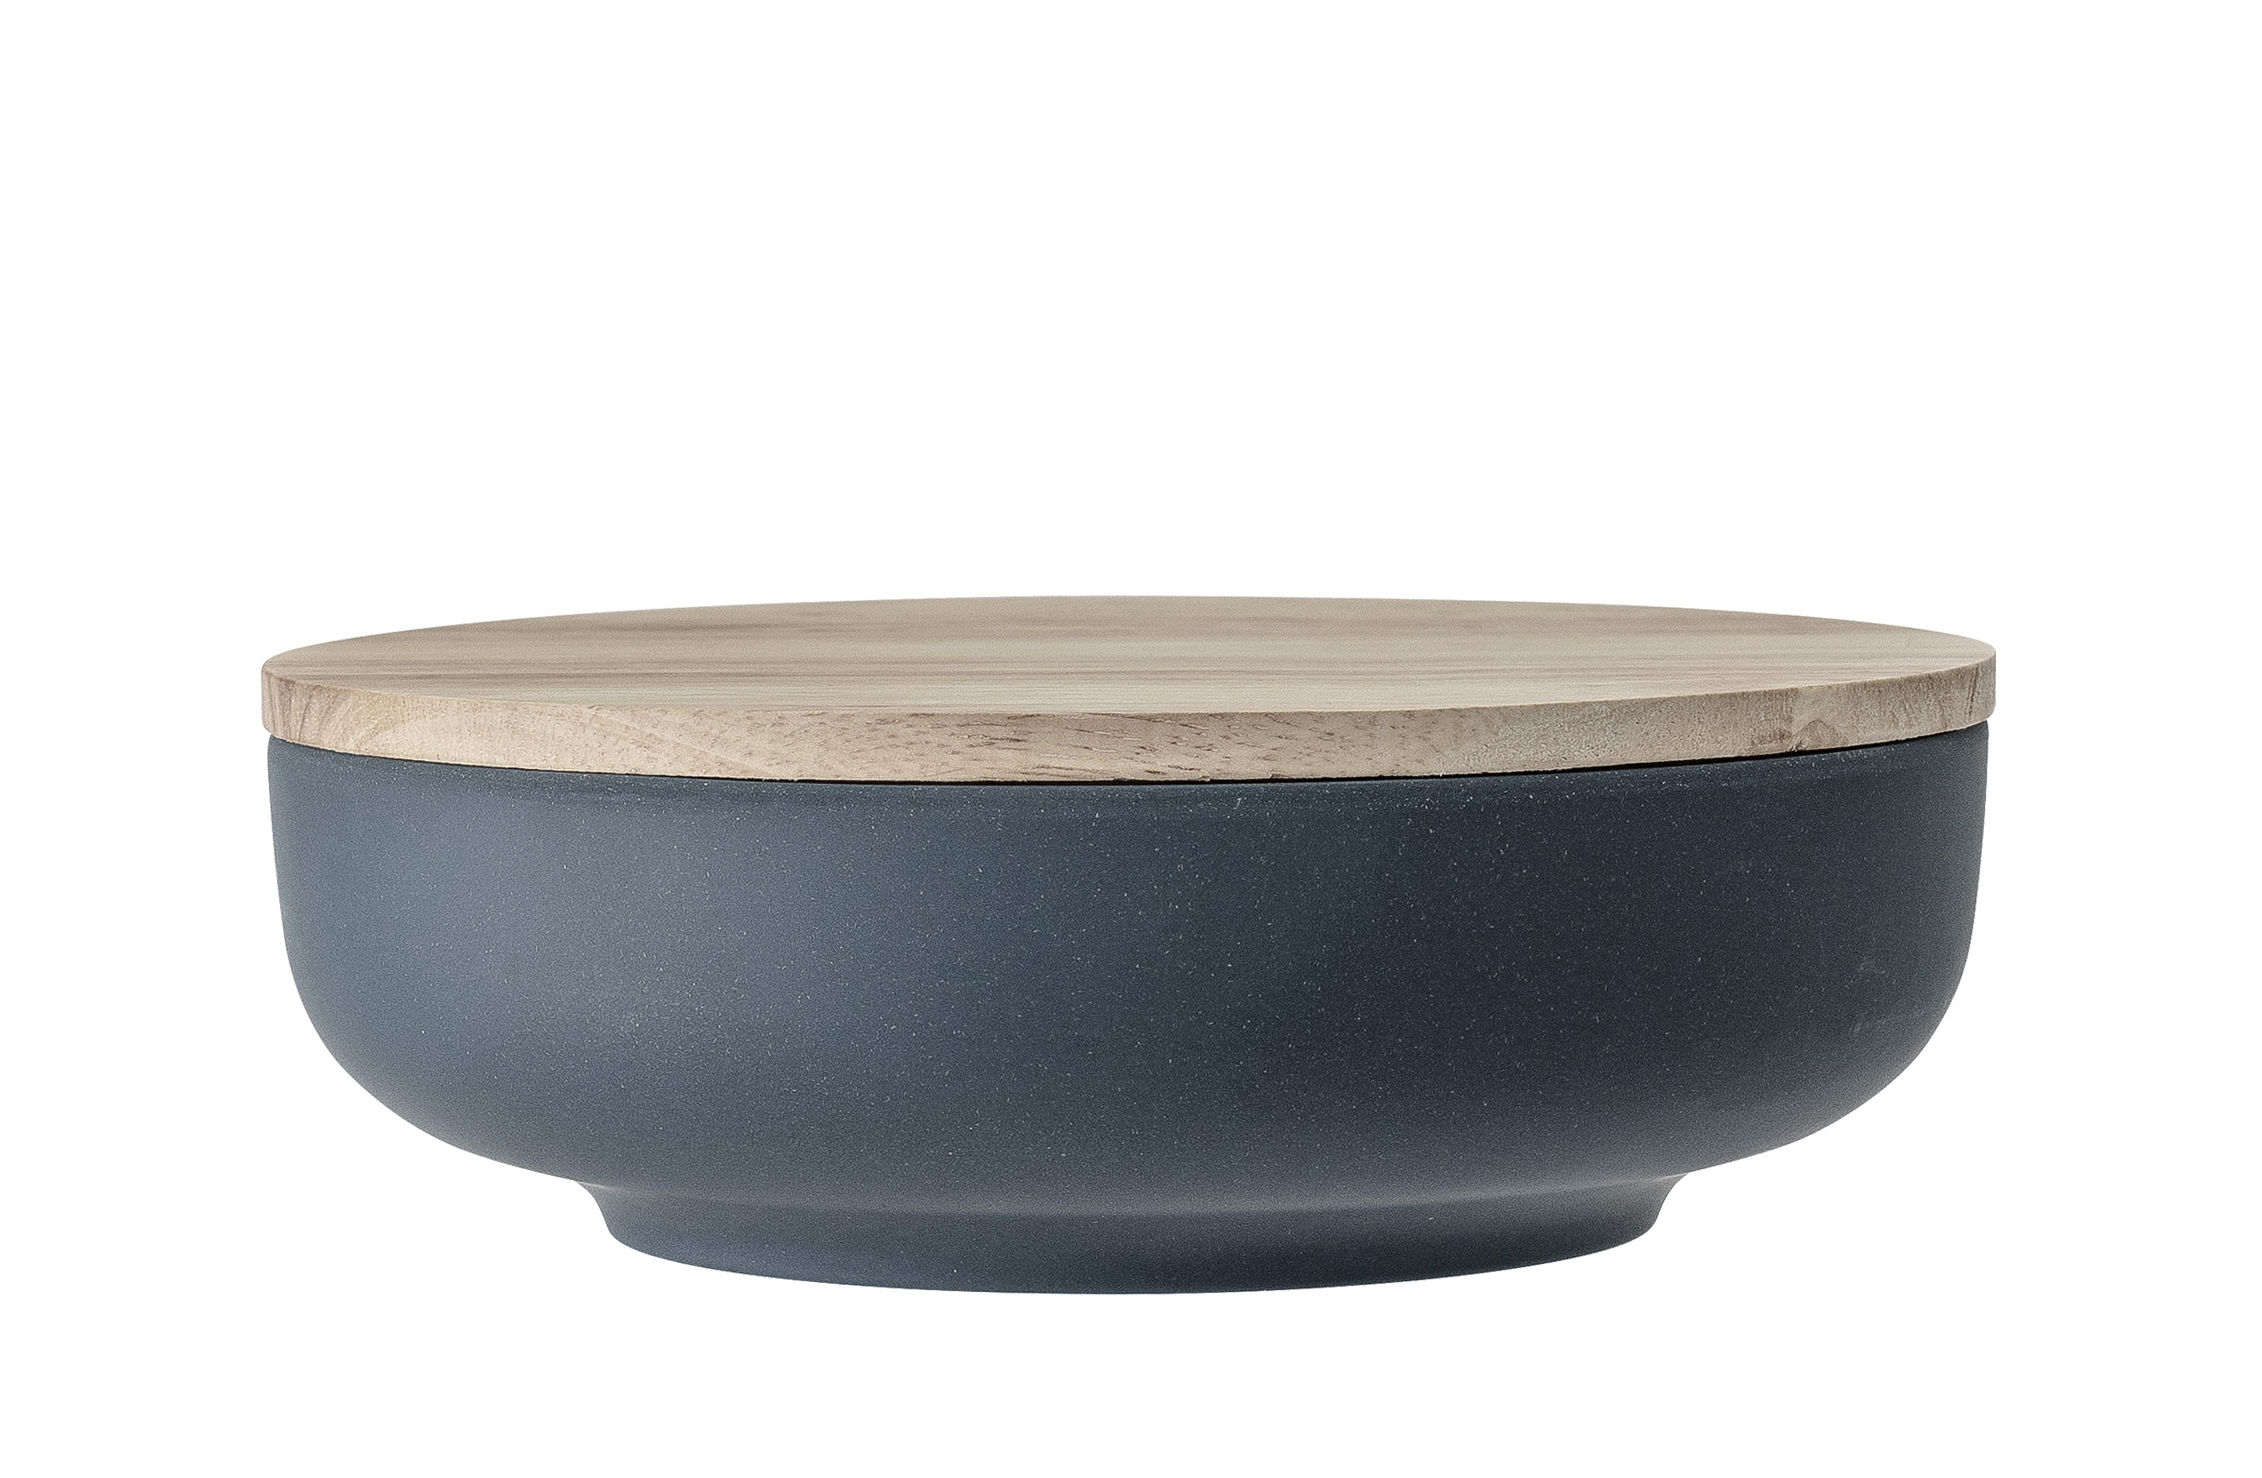 Tableware - Bowls - Java Container - / Avec couvercle - Ø 20,5 cm by Bloomingville - Blue / Wood - Bamboo fibre, Wood